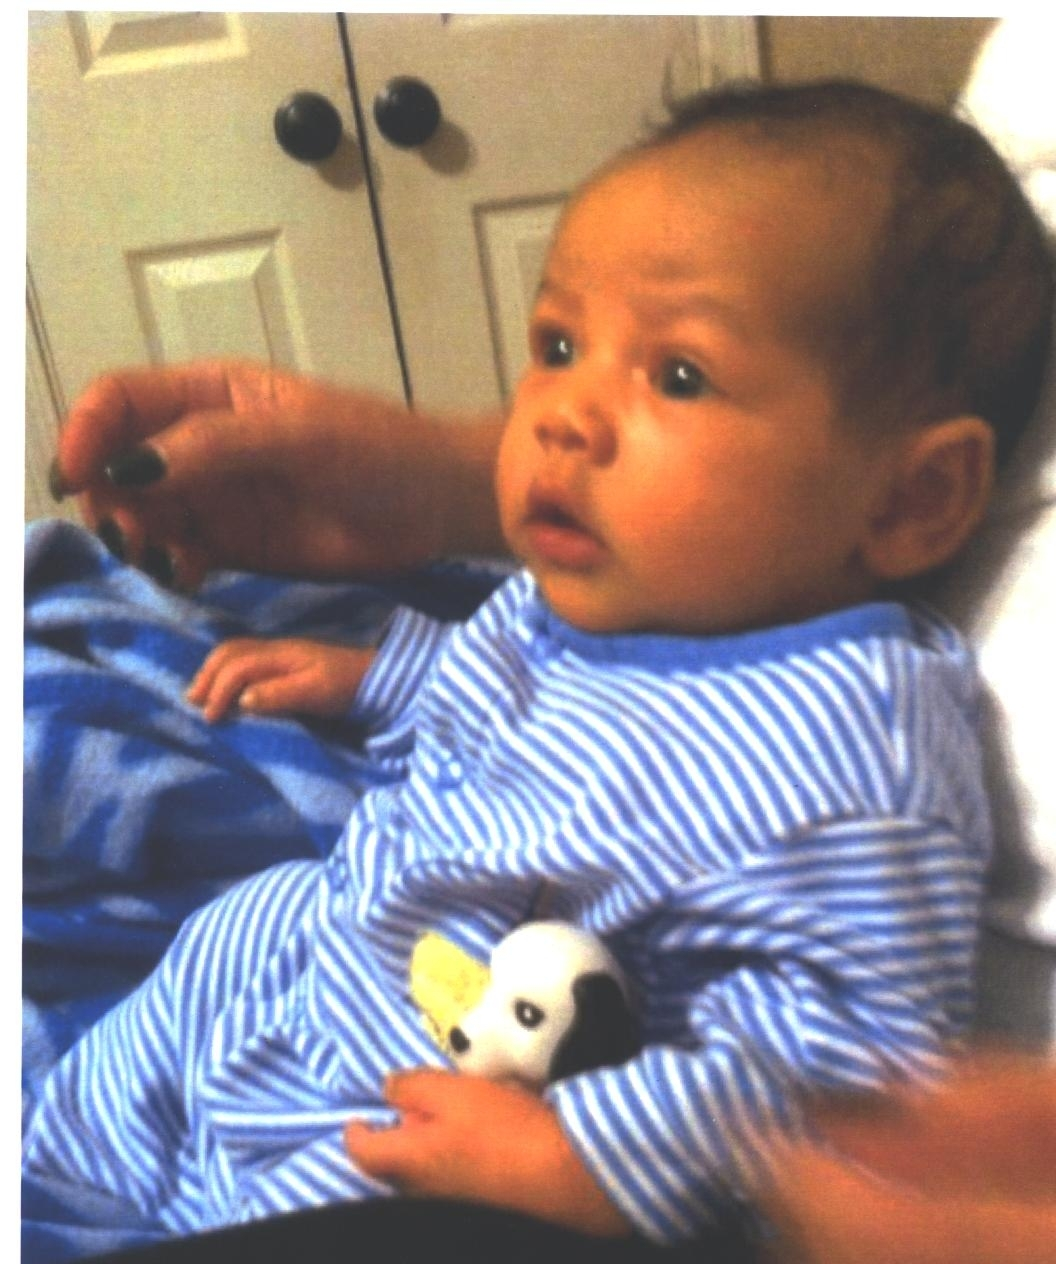 Amber Alert Issued For Missing 2 Month Old Baby Out Of